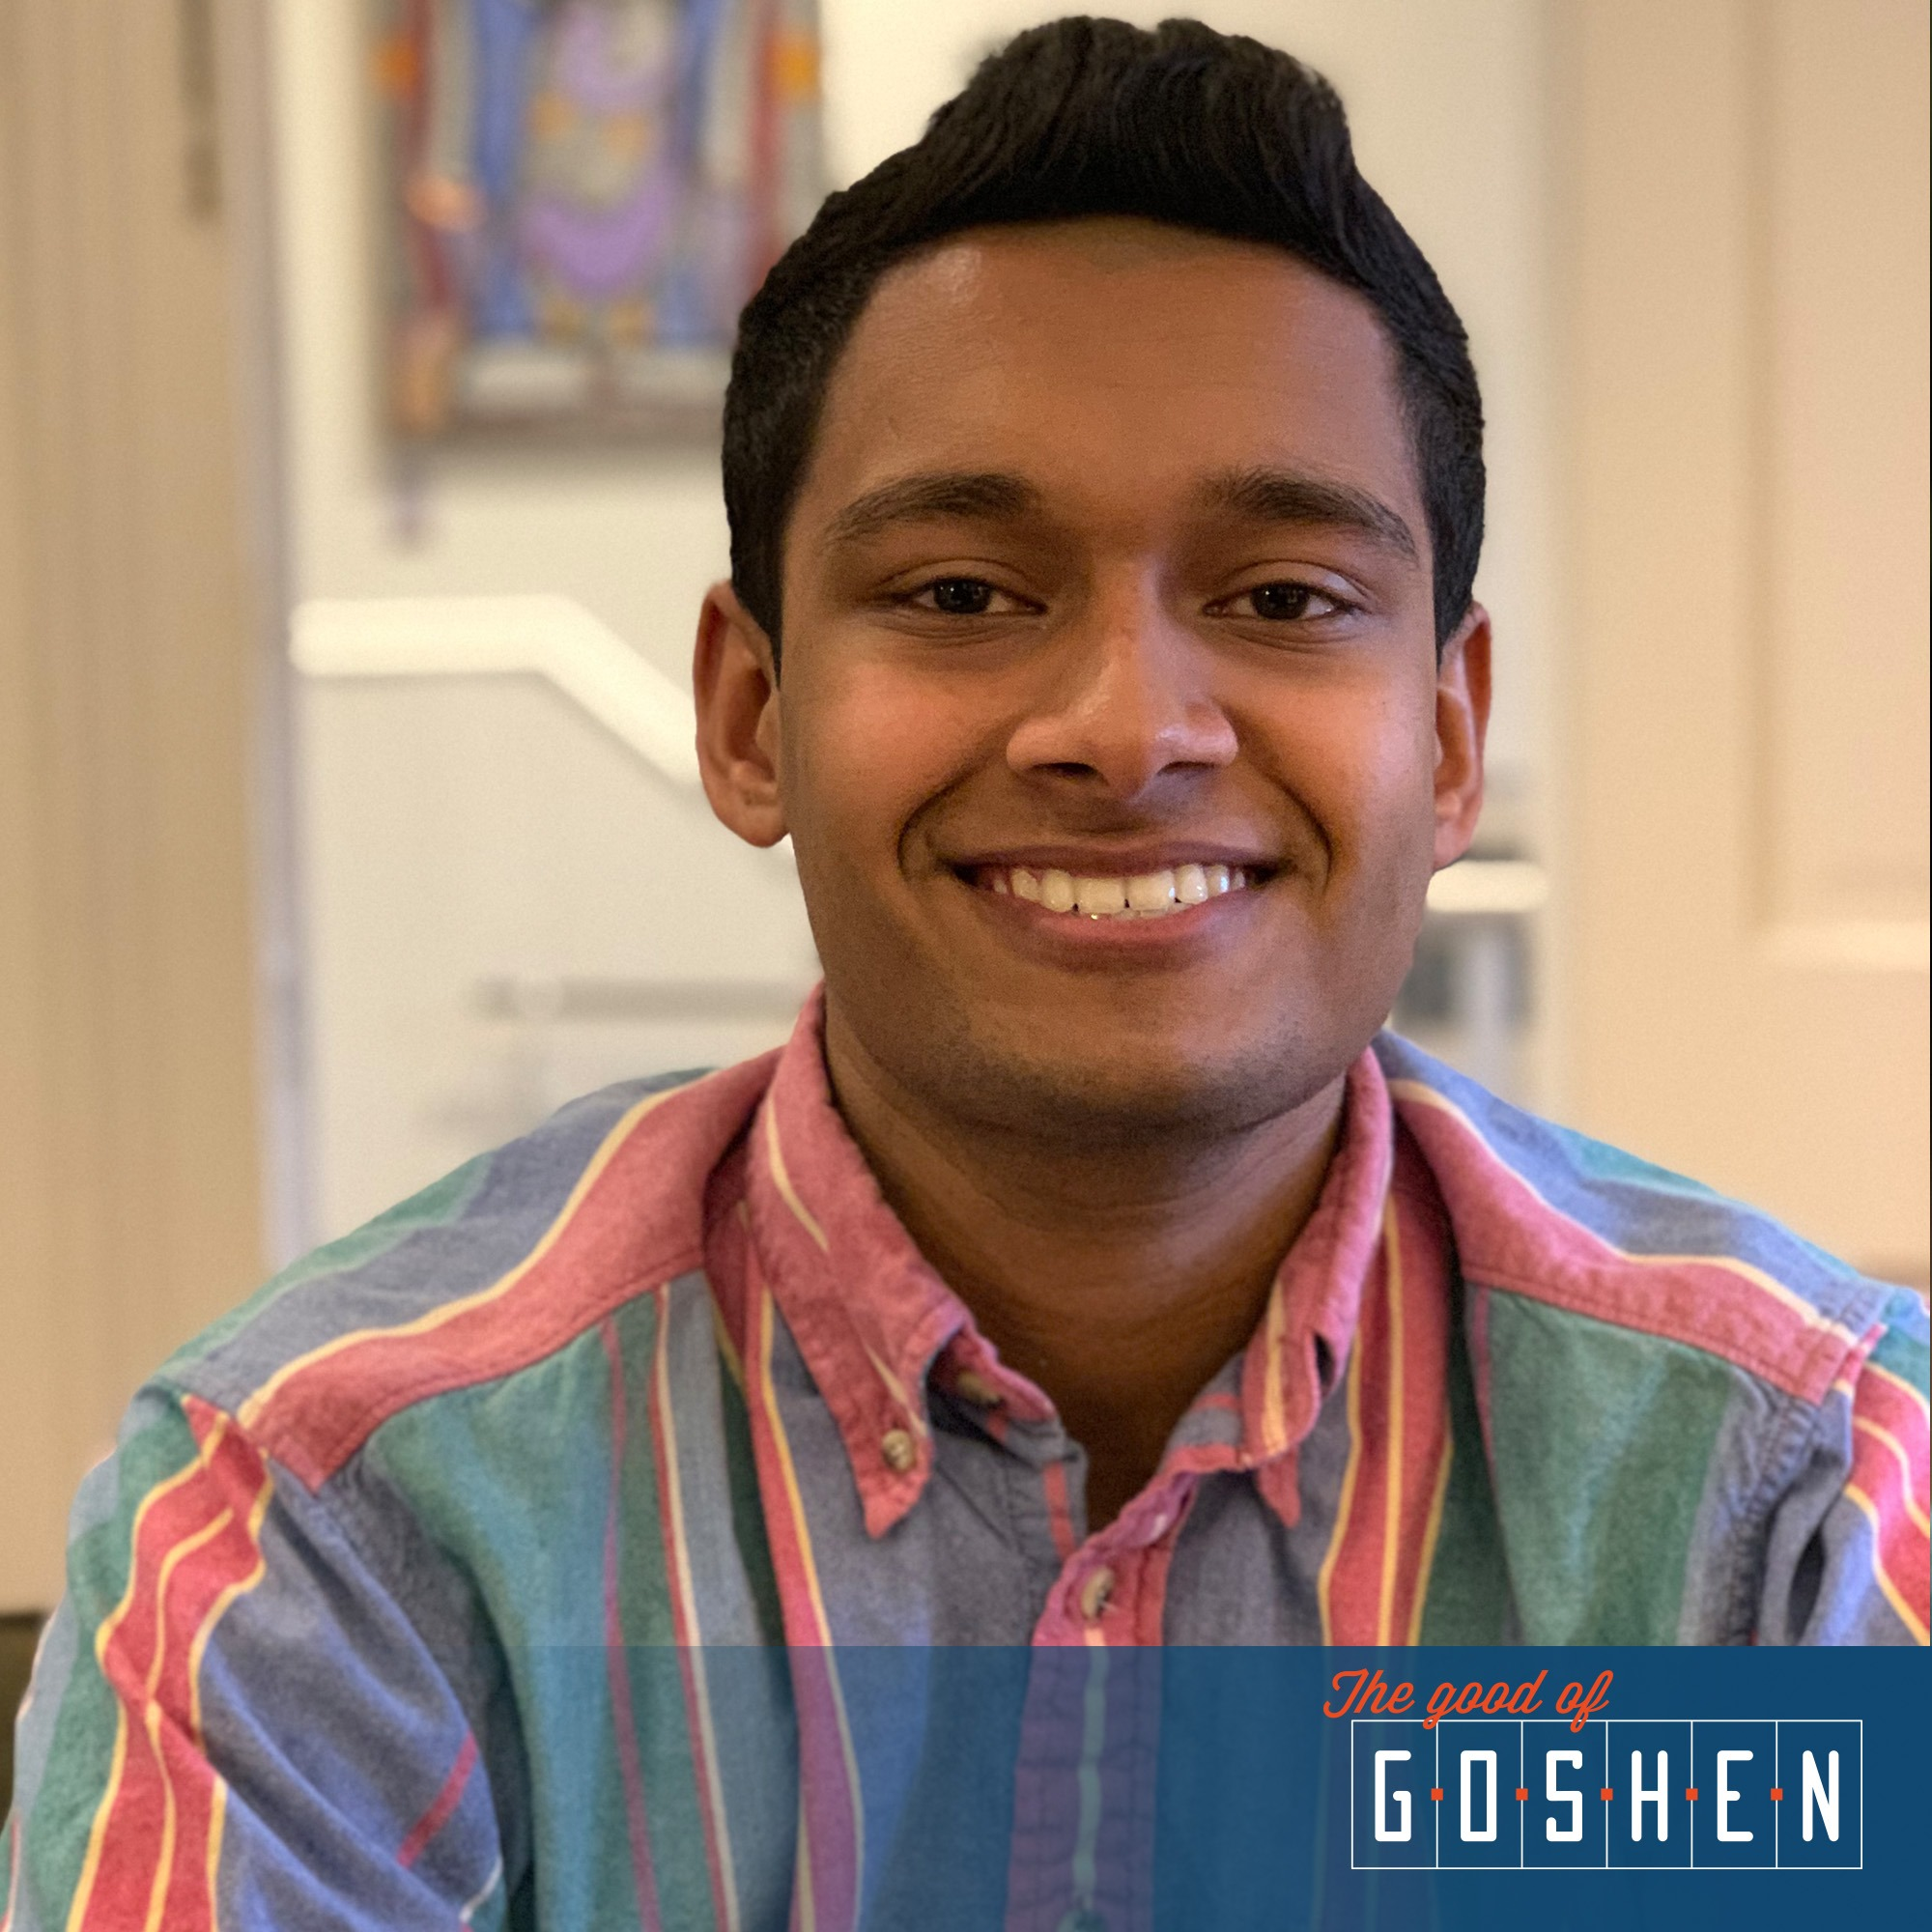 Ronit Goswami • The Good of Goshen